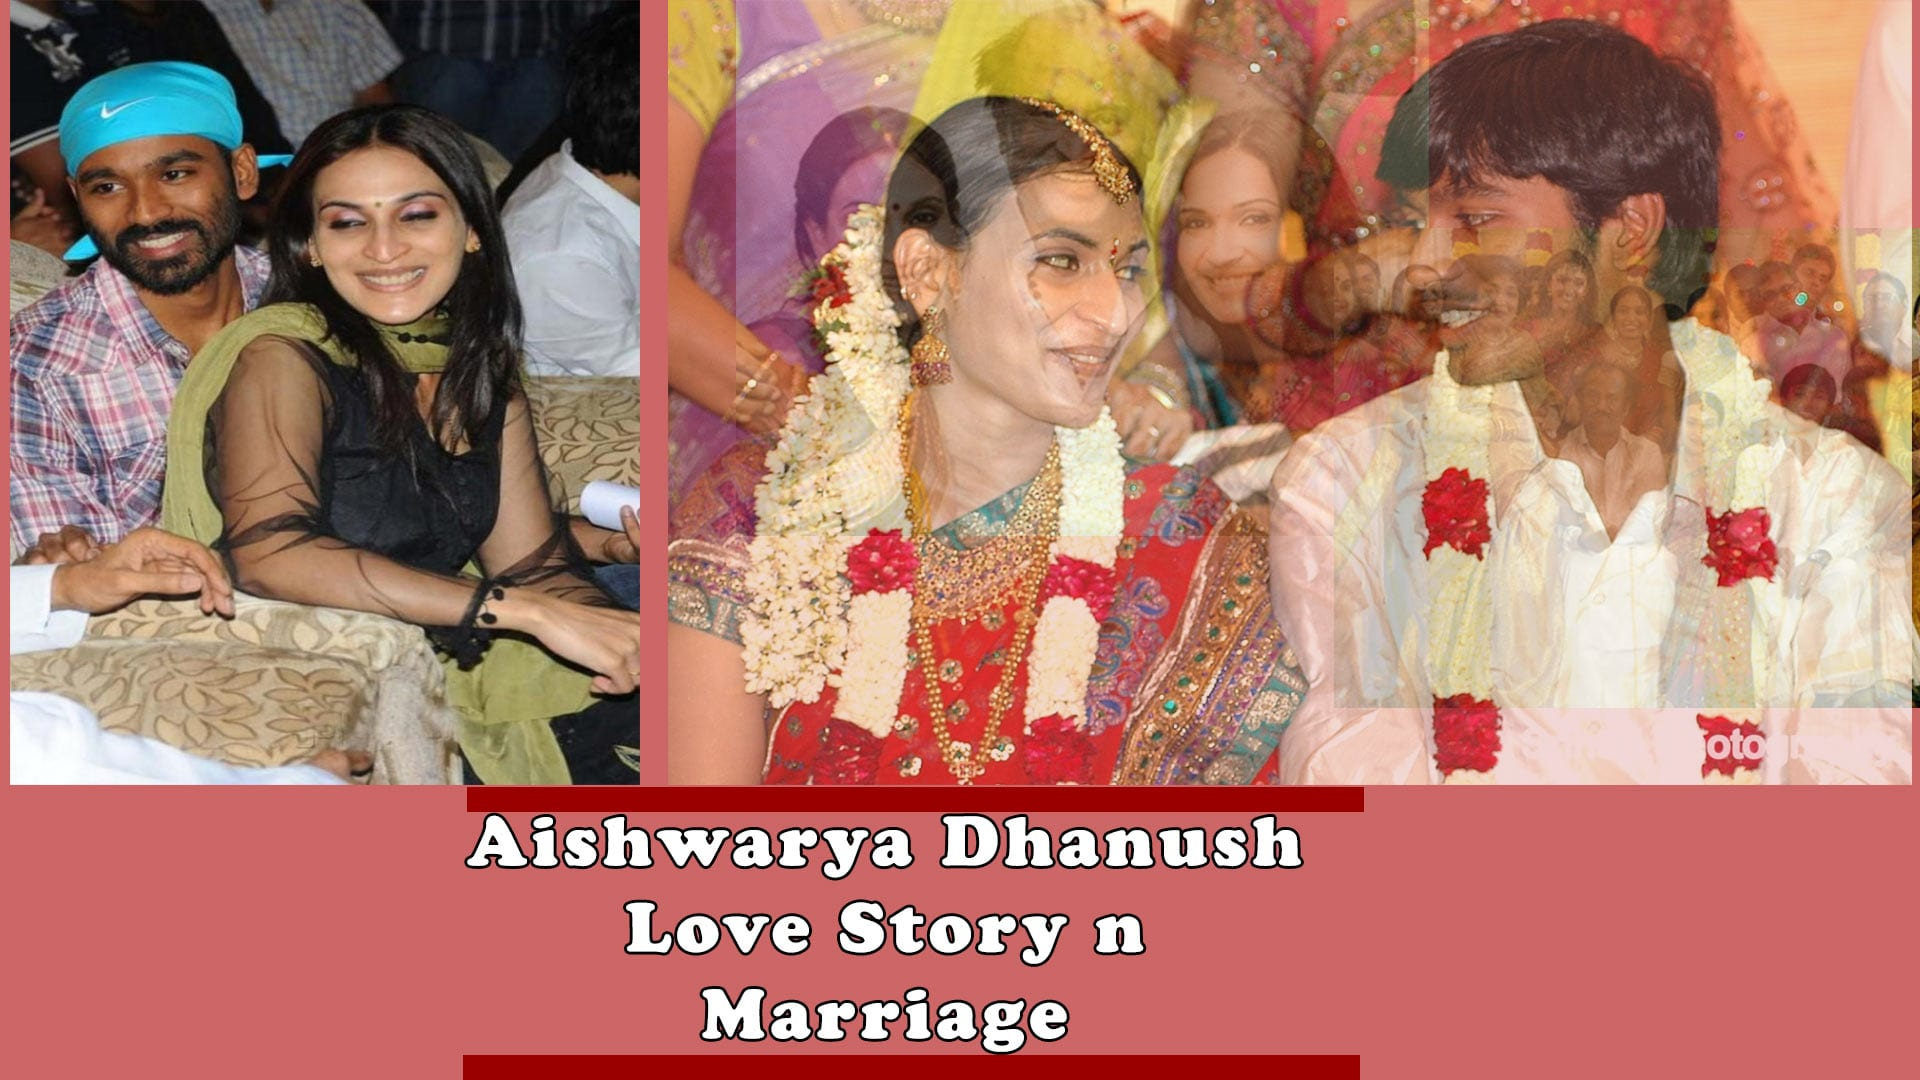 aishwarya dhanush marriage